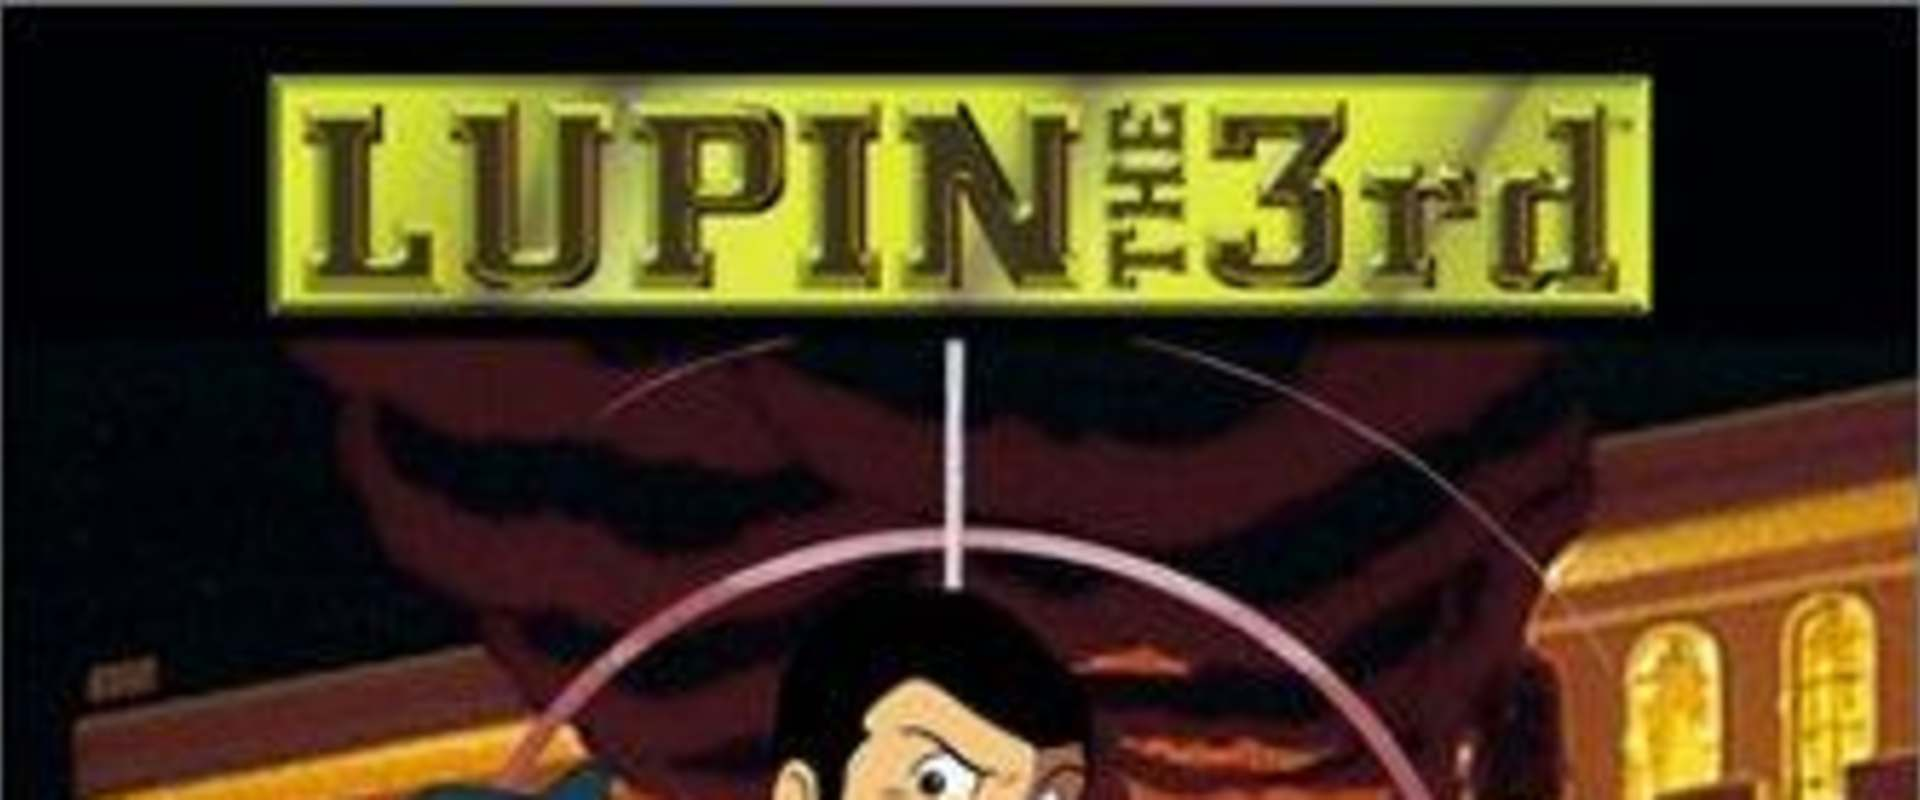 Lupin III: Voyage to Danger background 1